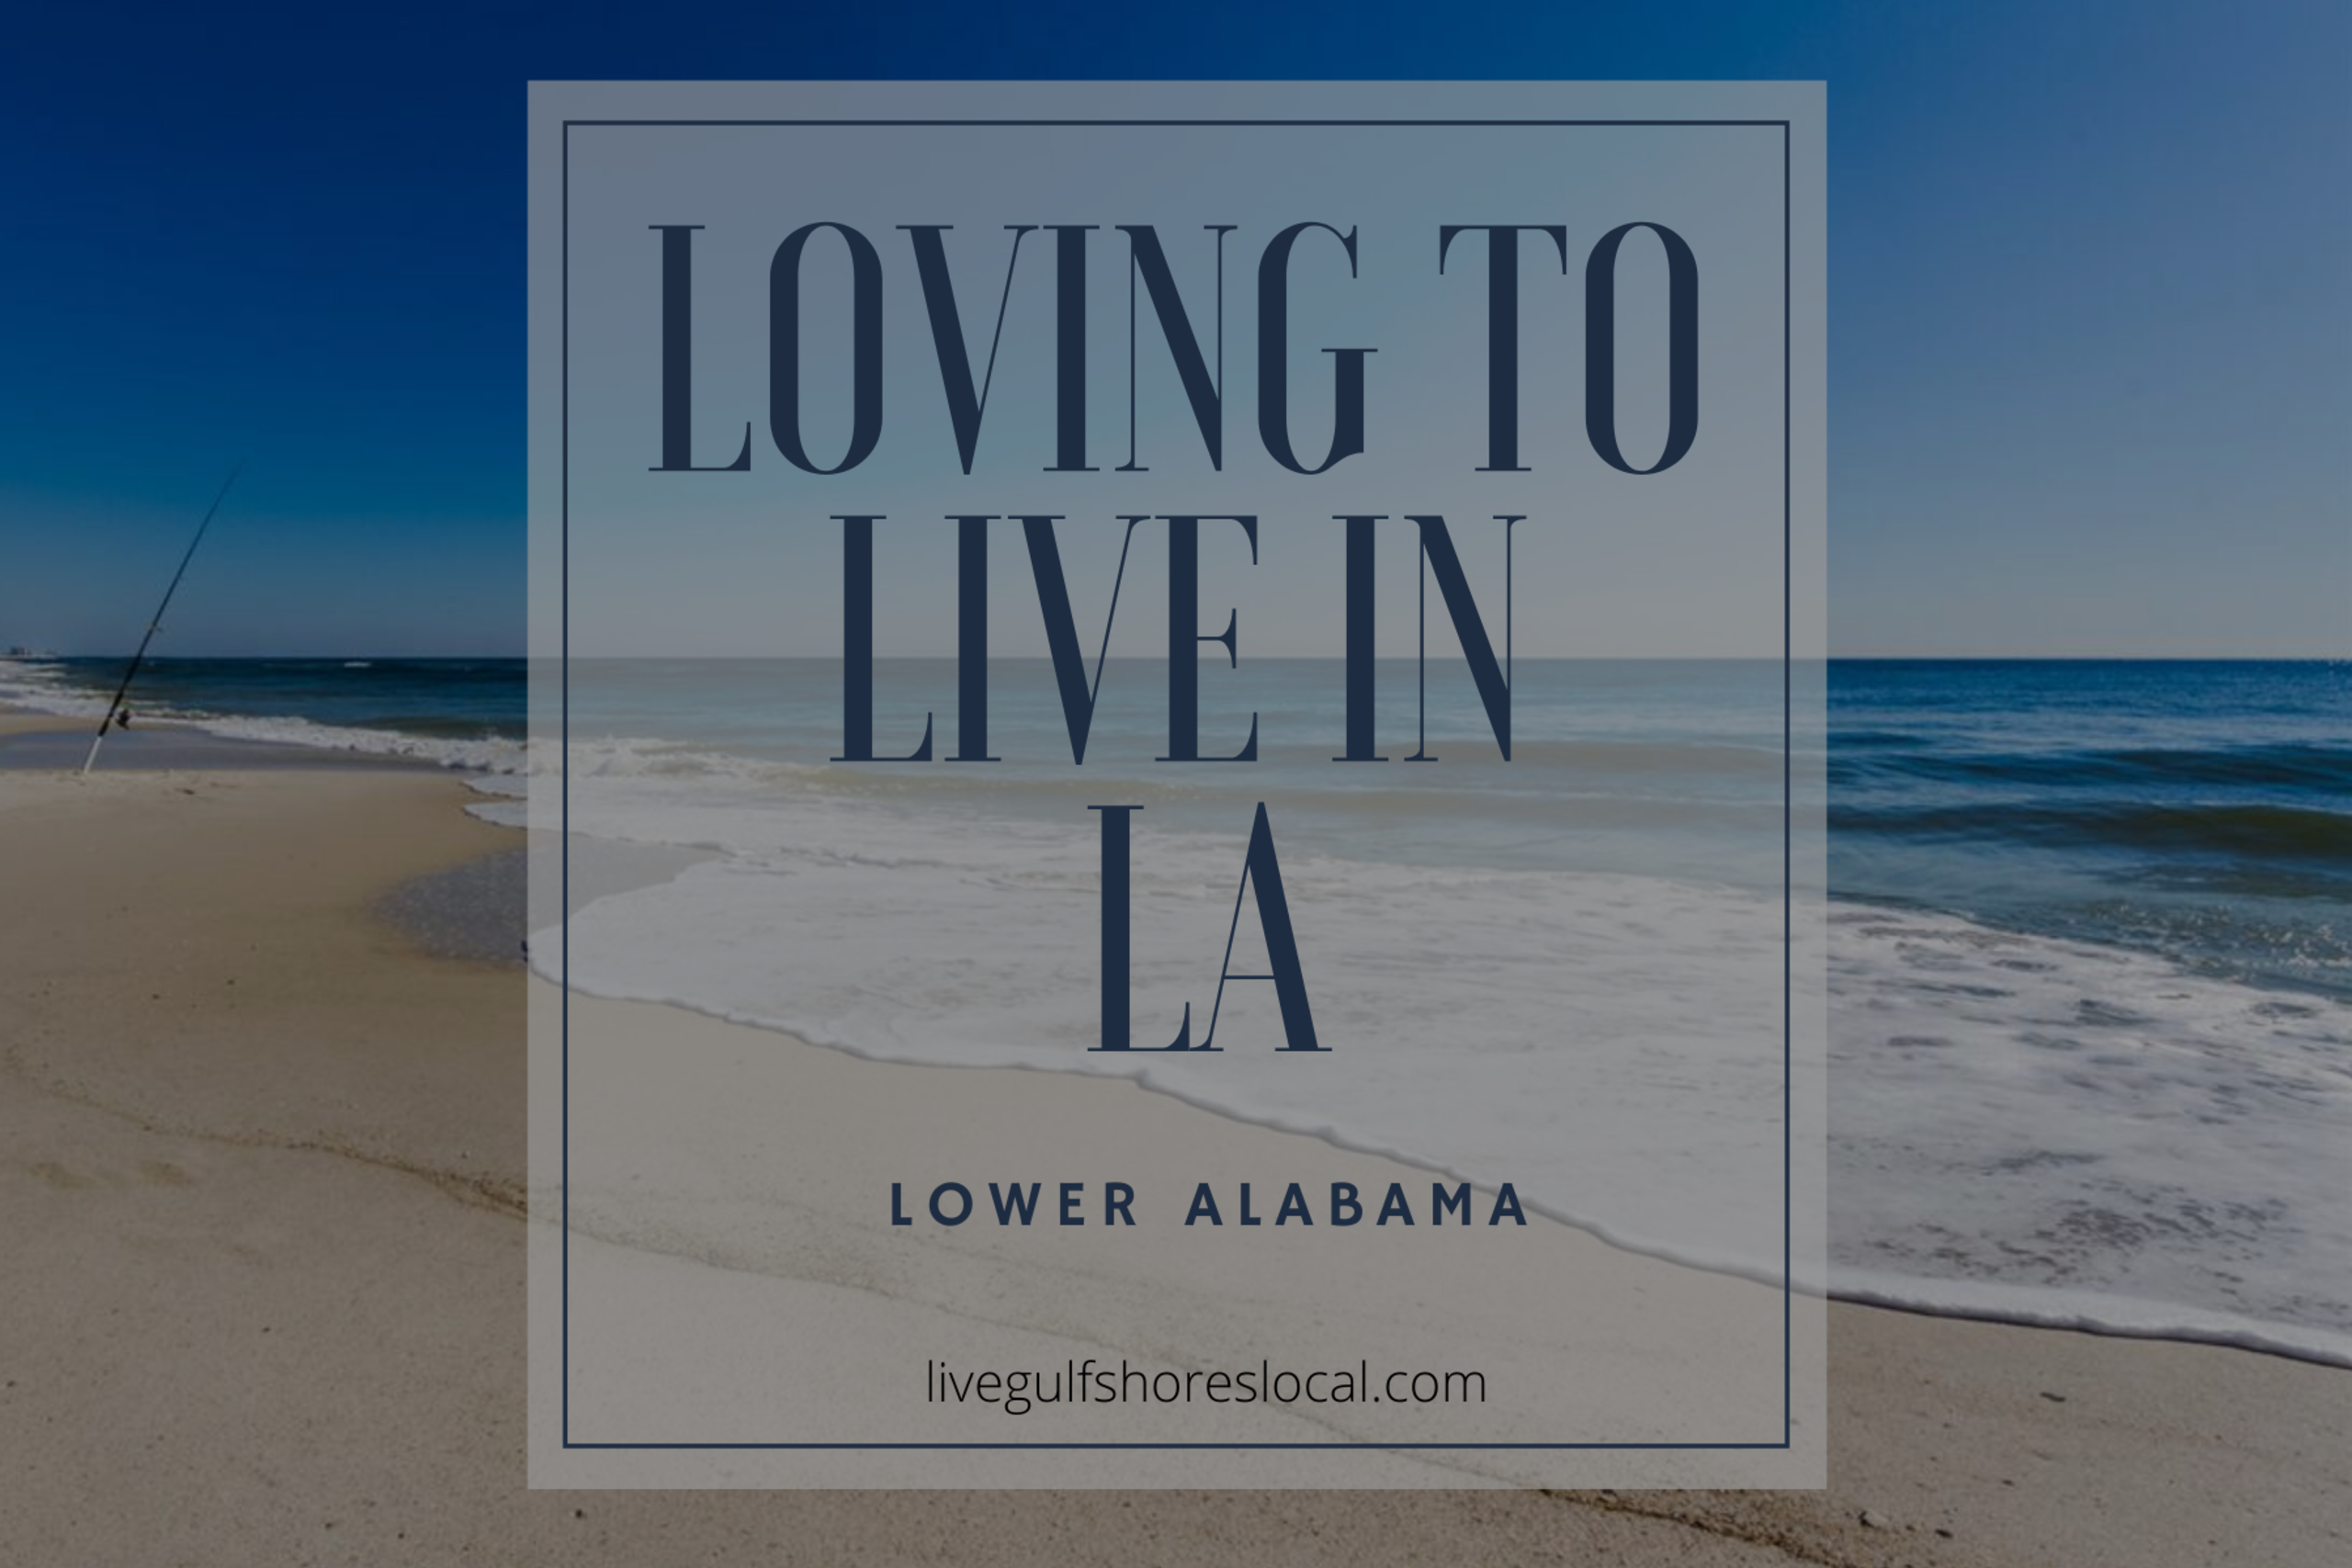 Loving to Live in LA (Lower Alabama)